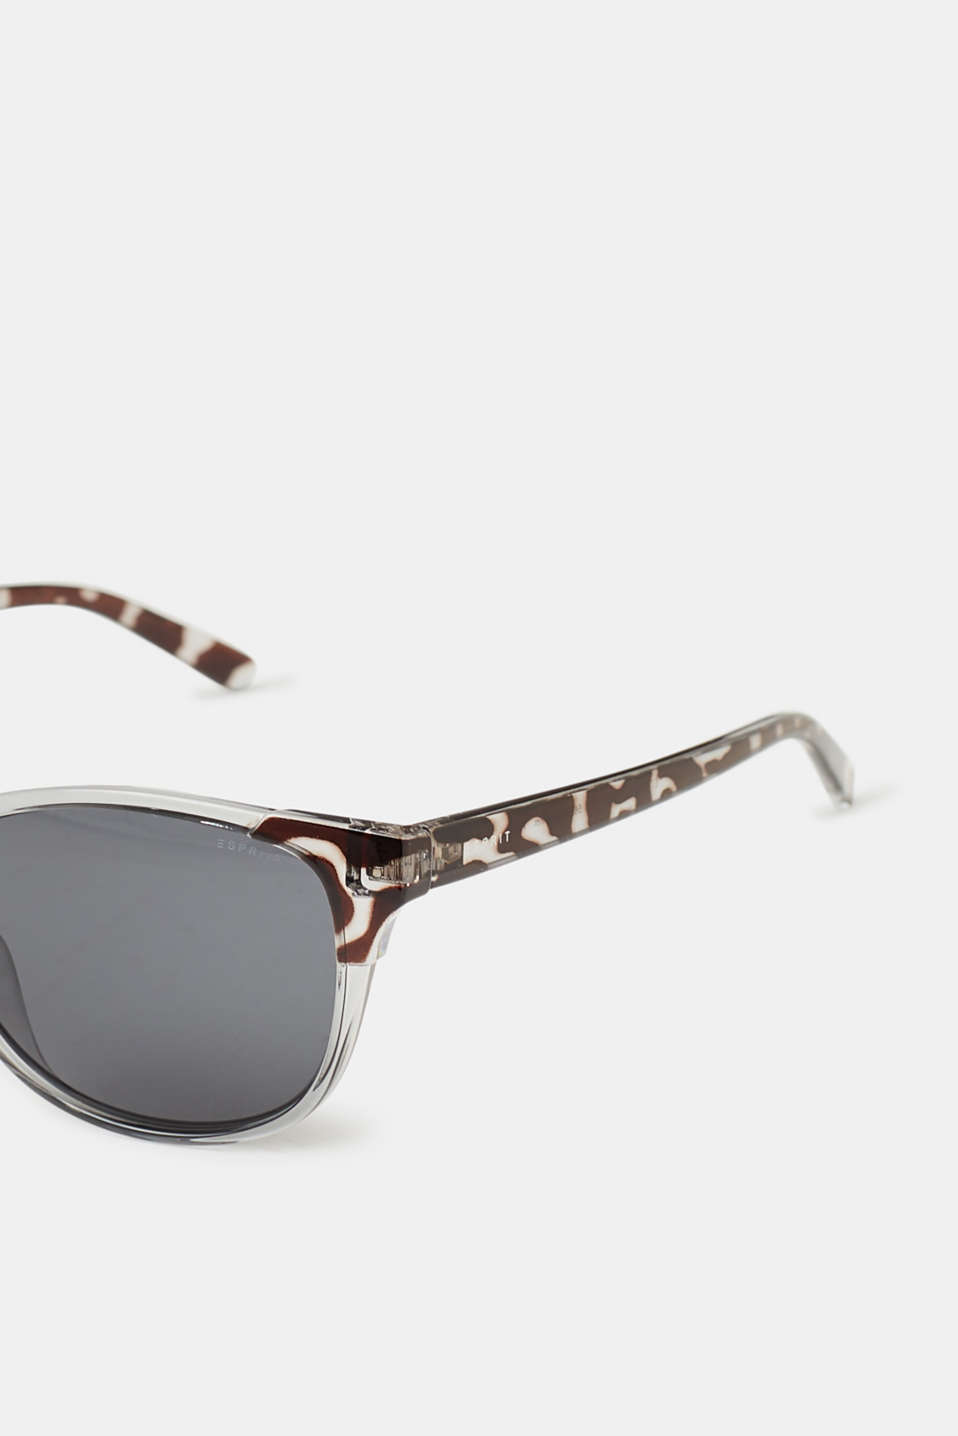 Sunglasses with an animal pattern